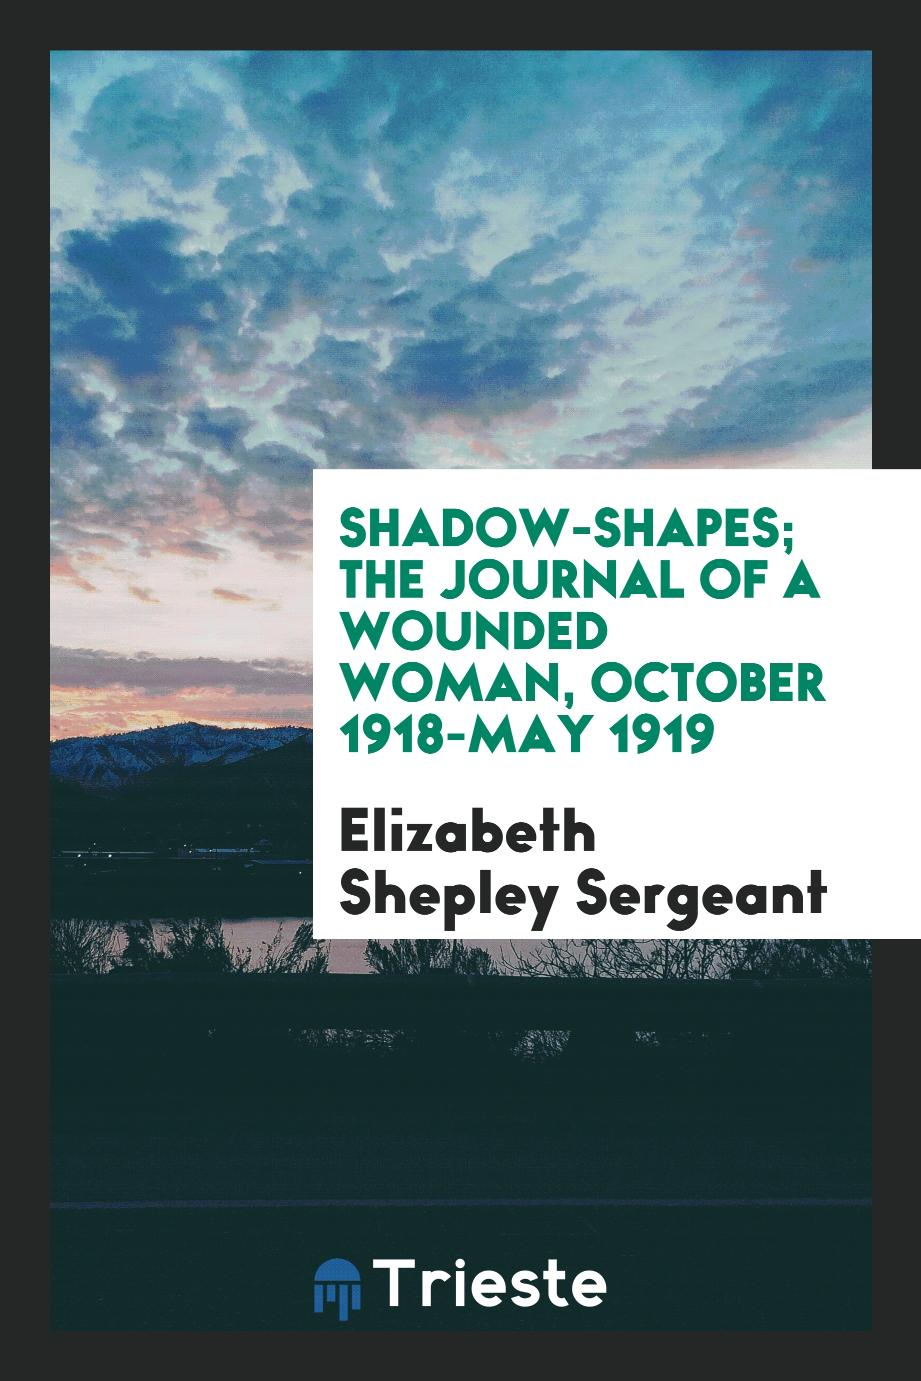 Shadow-shapes; the journal of a wounded woman, October 1918-May 1919